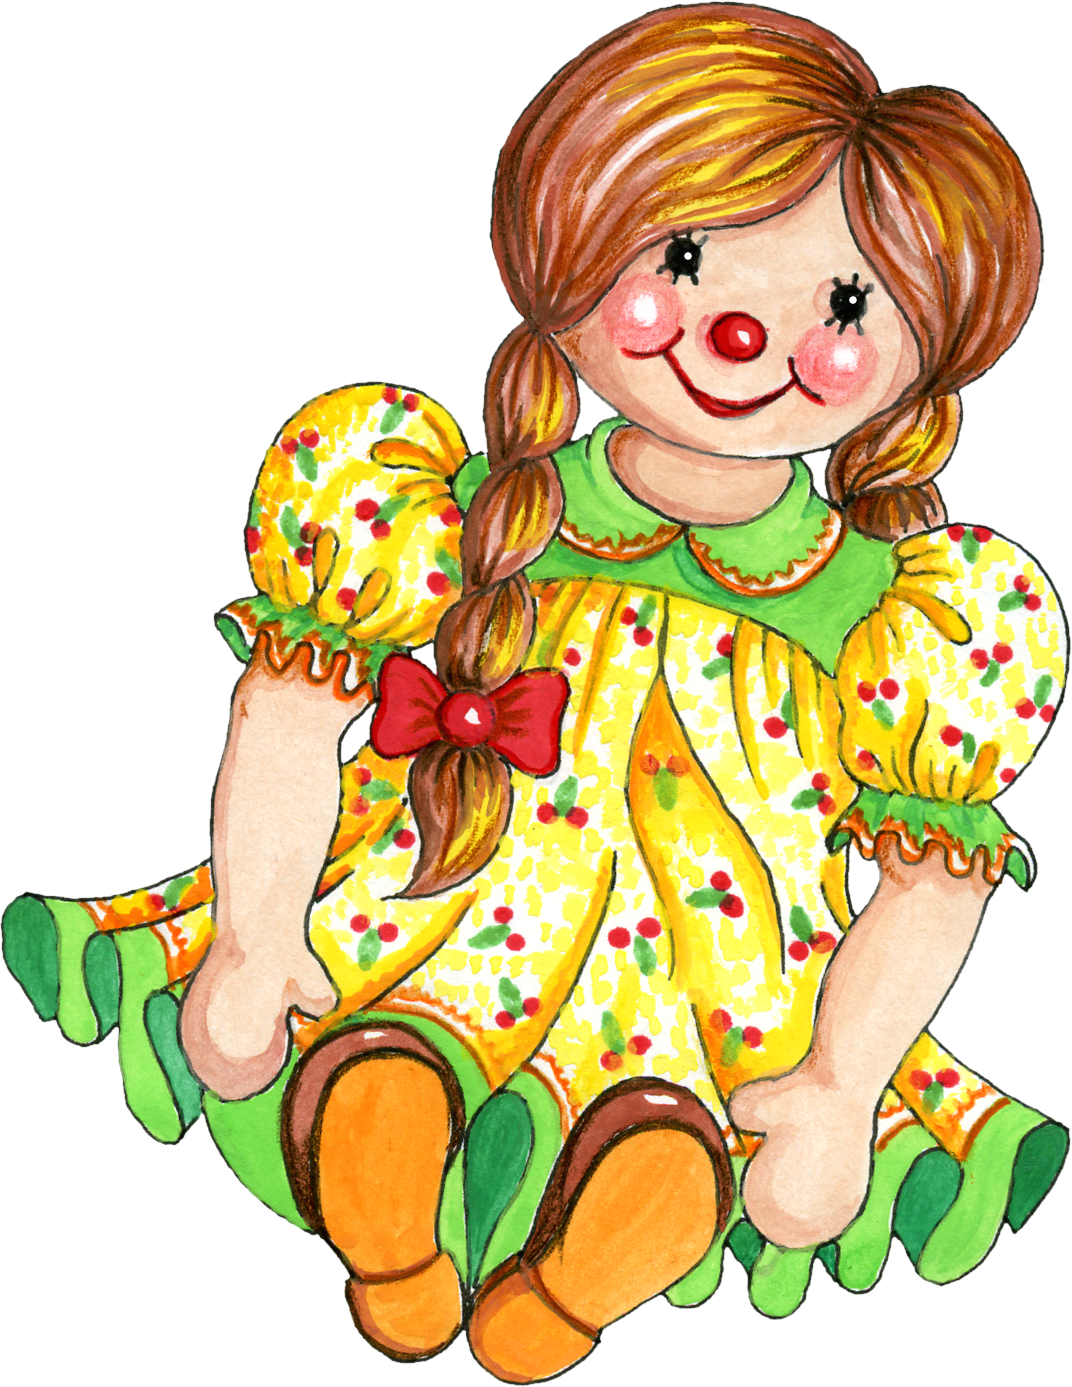 Doll images clip art.